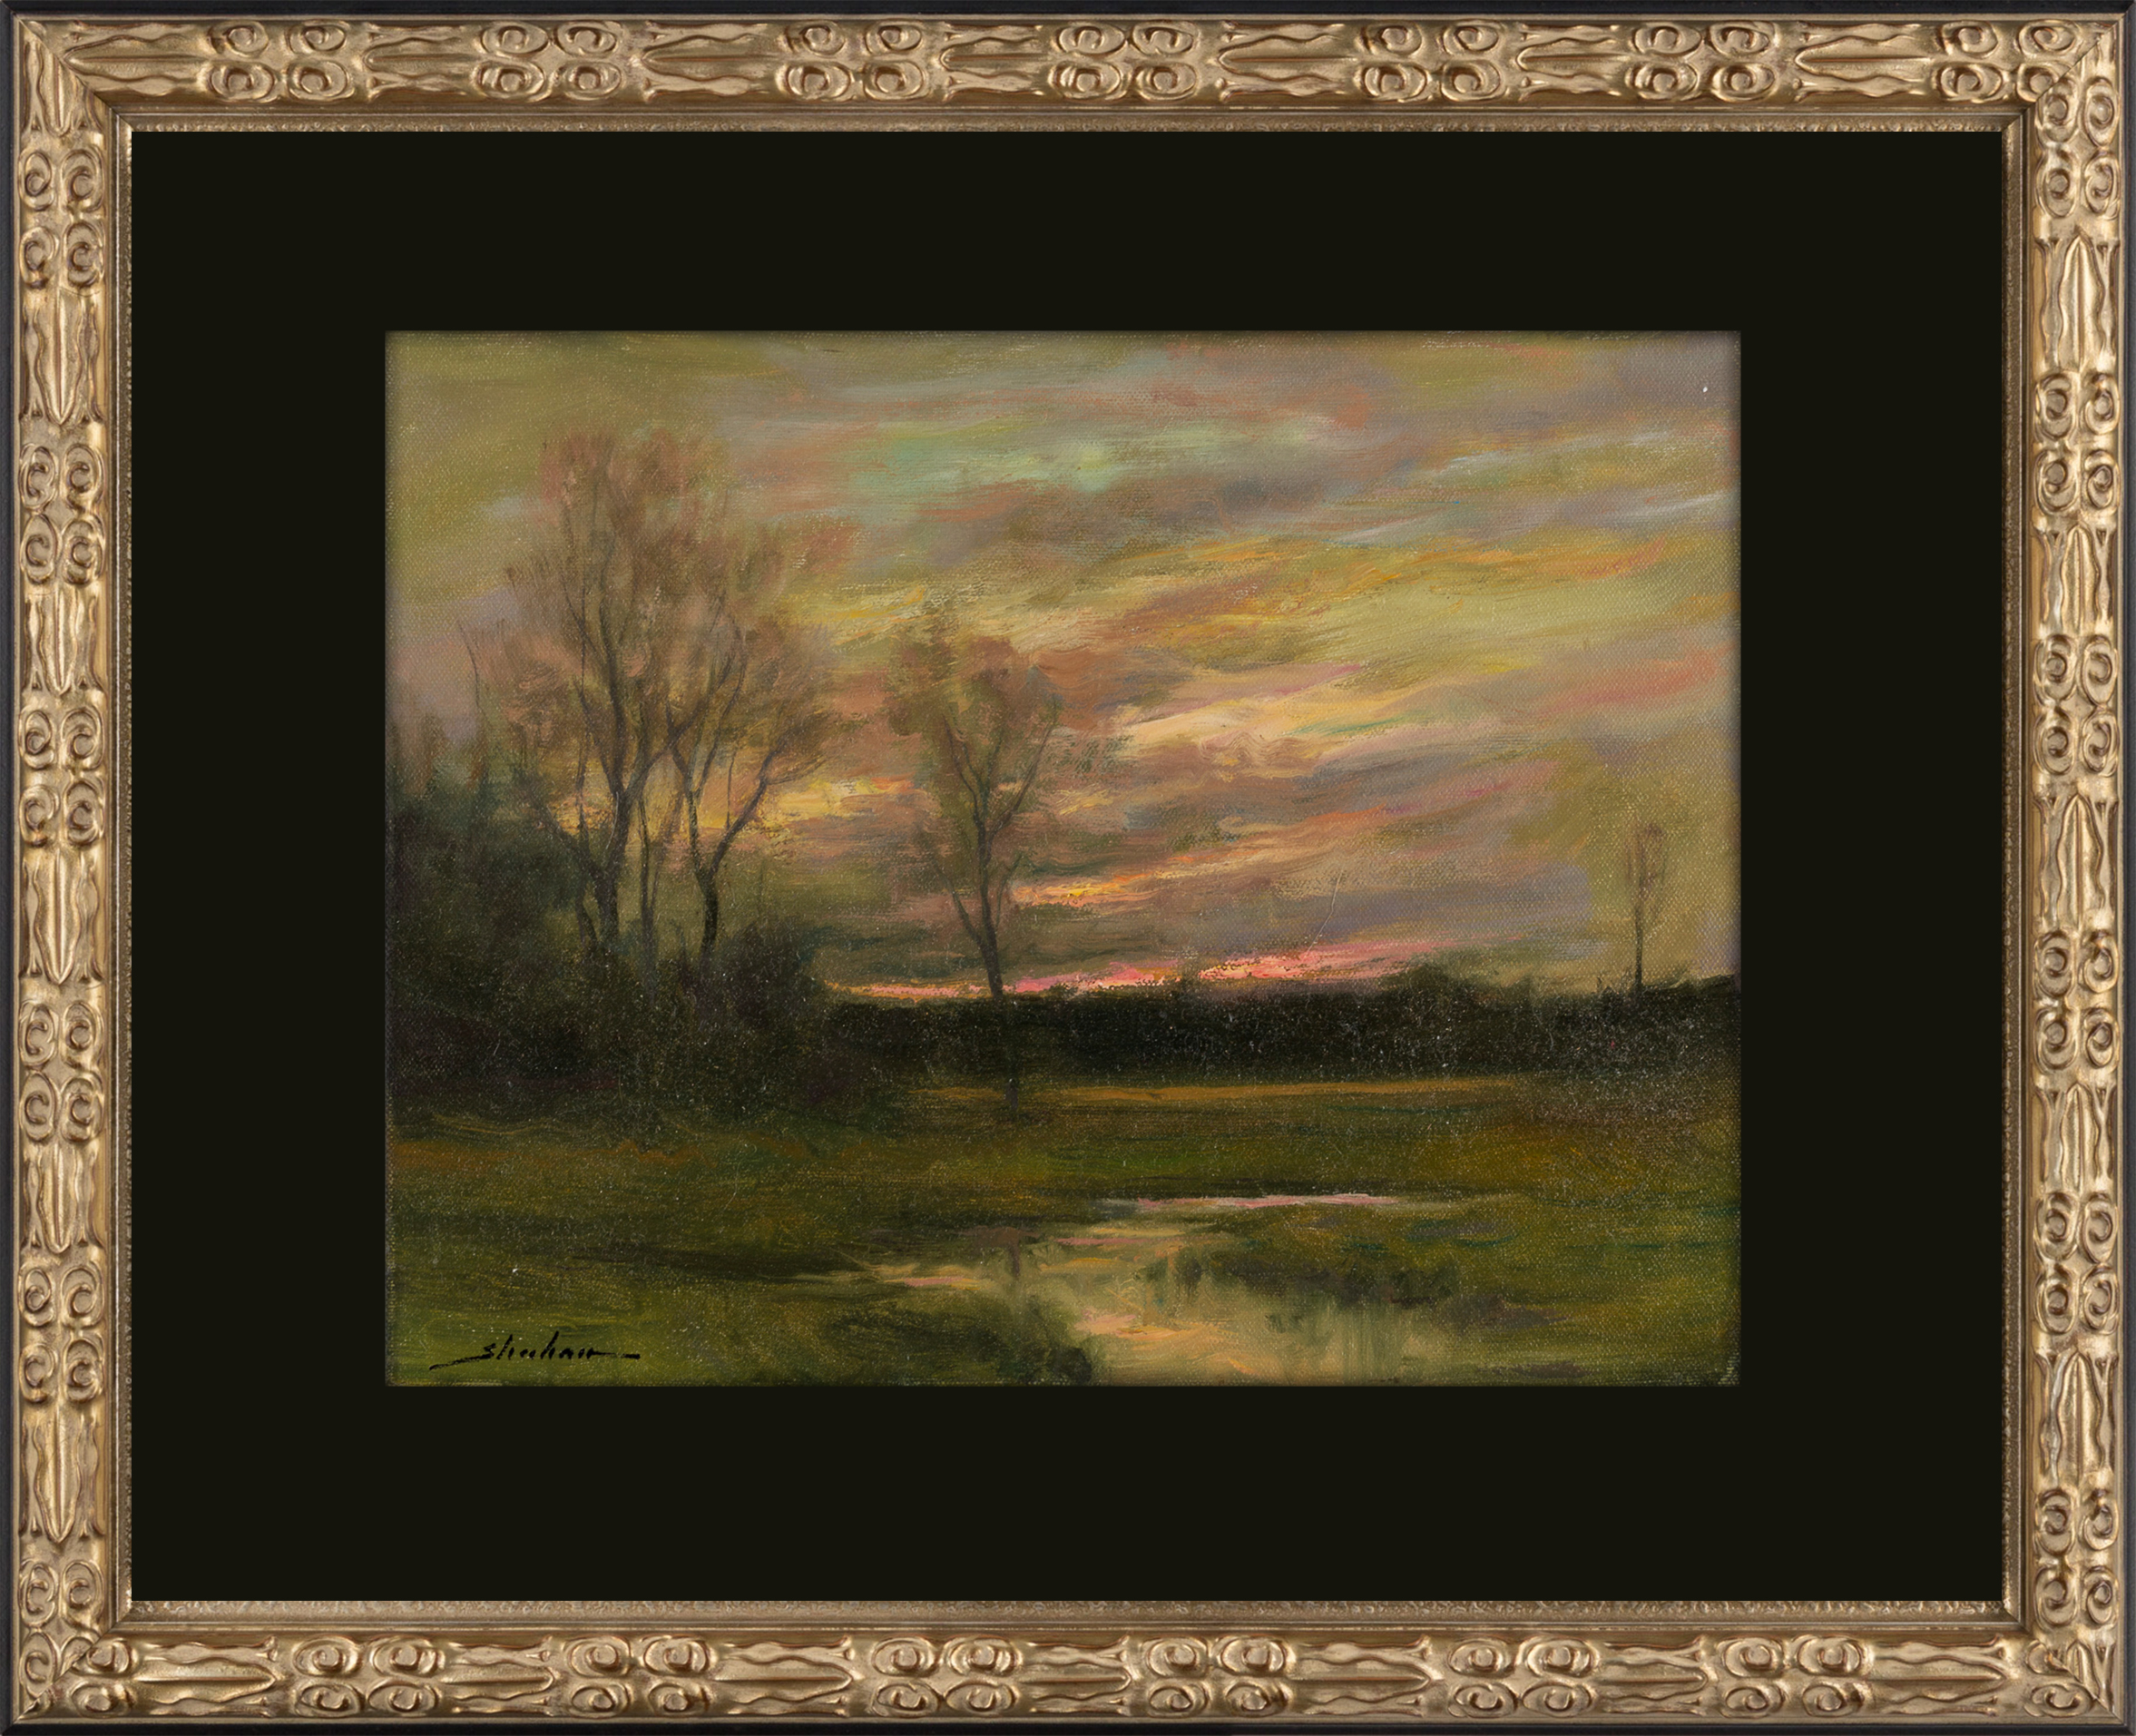 """Sheehan, """"Twilight's Call,"""" Oil on Canvas, 11 x 14 in."""